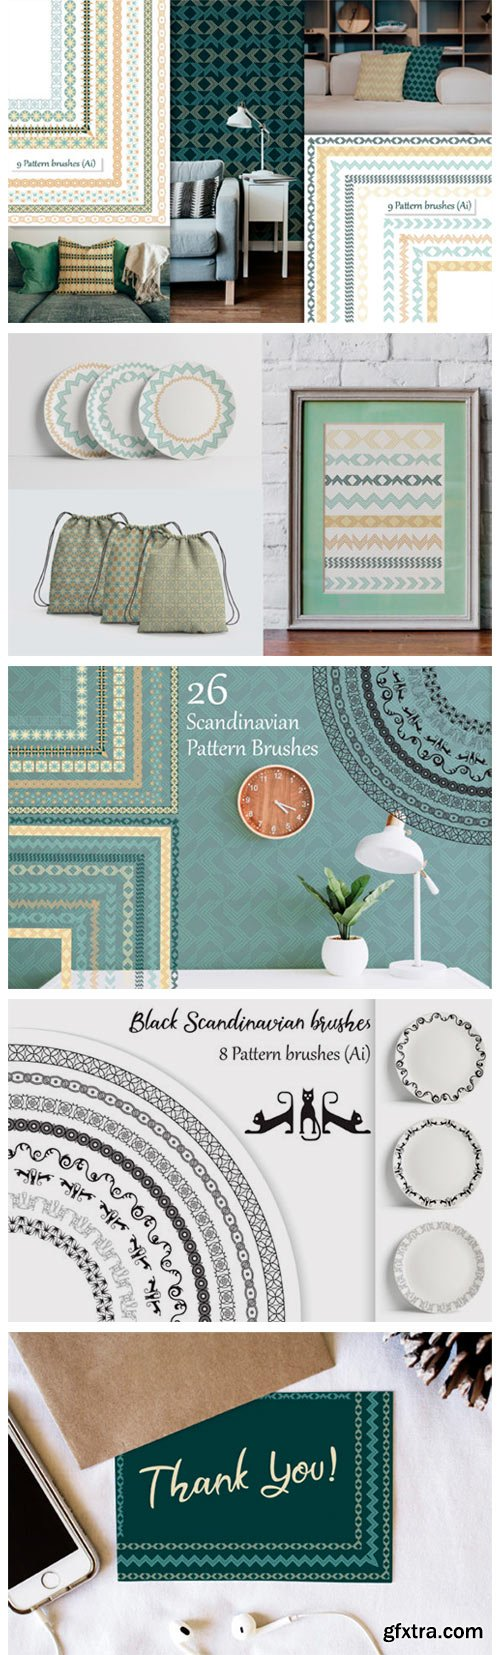 Scandinavian Pattern Brushes 6798389